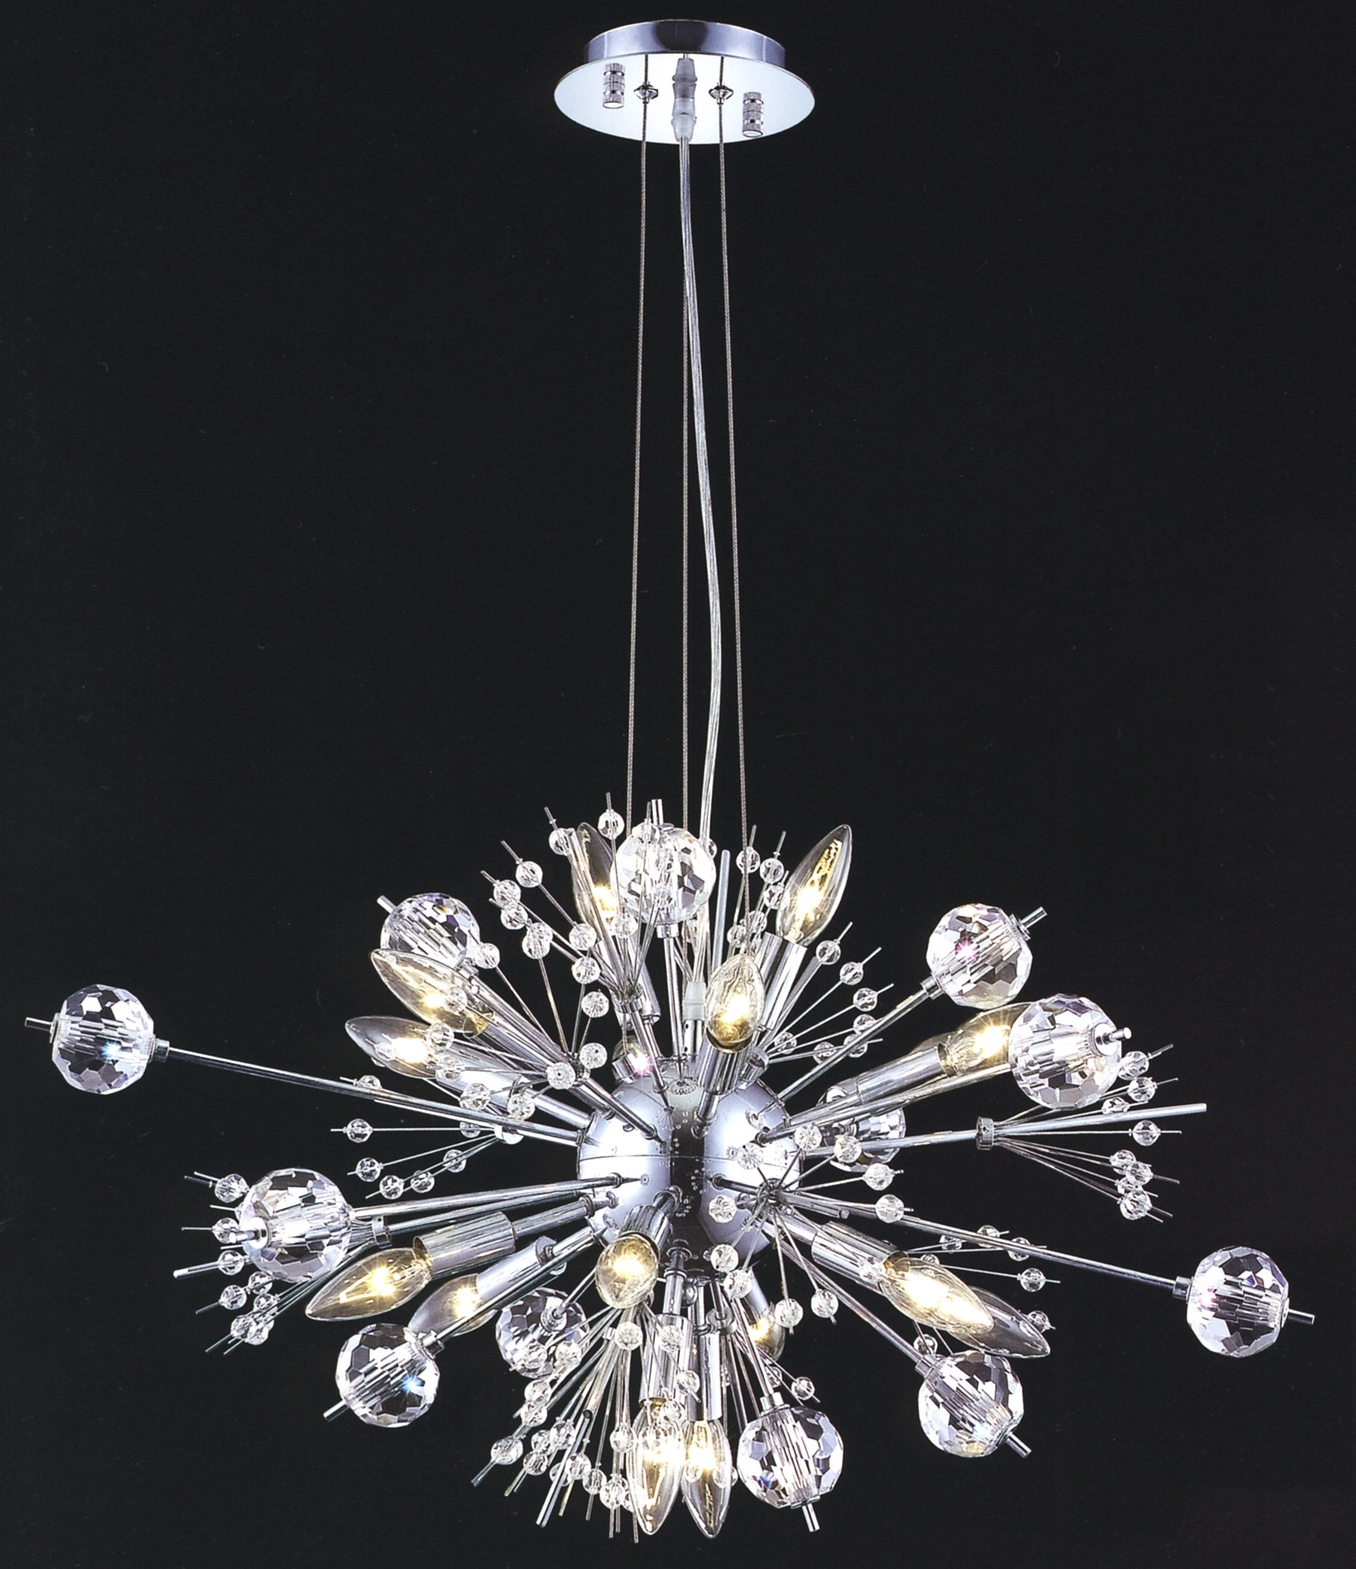 Small Chandeliers In Well Known Lighting 3400d24c/ec Crystal Cyclone Small Chandelier (View 14 of 20)